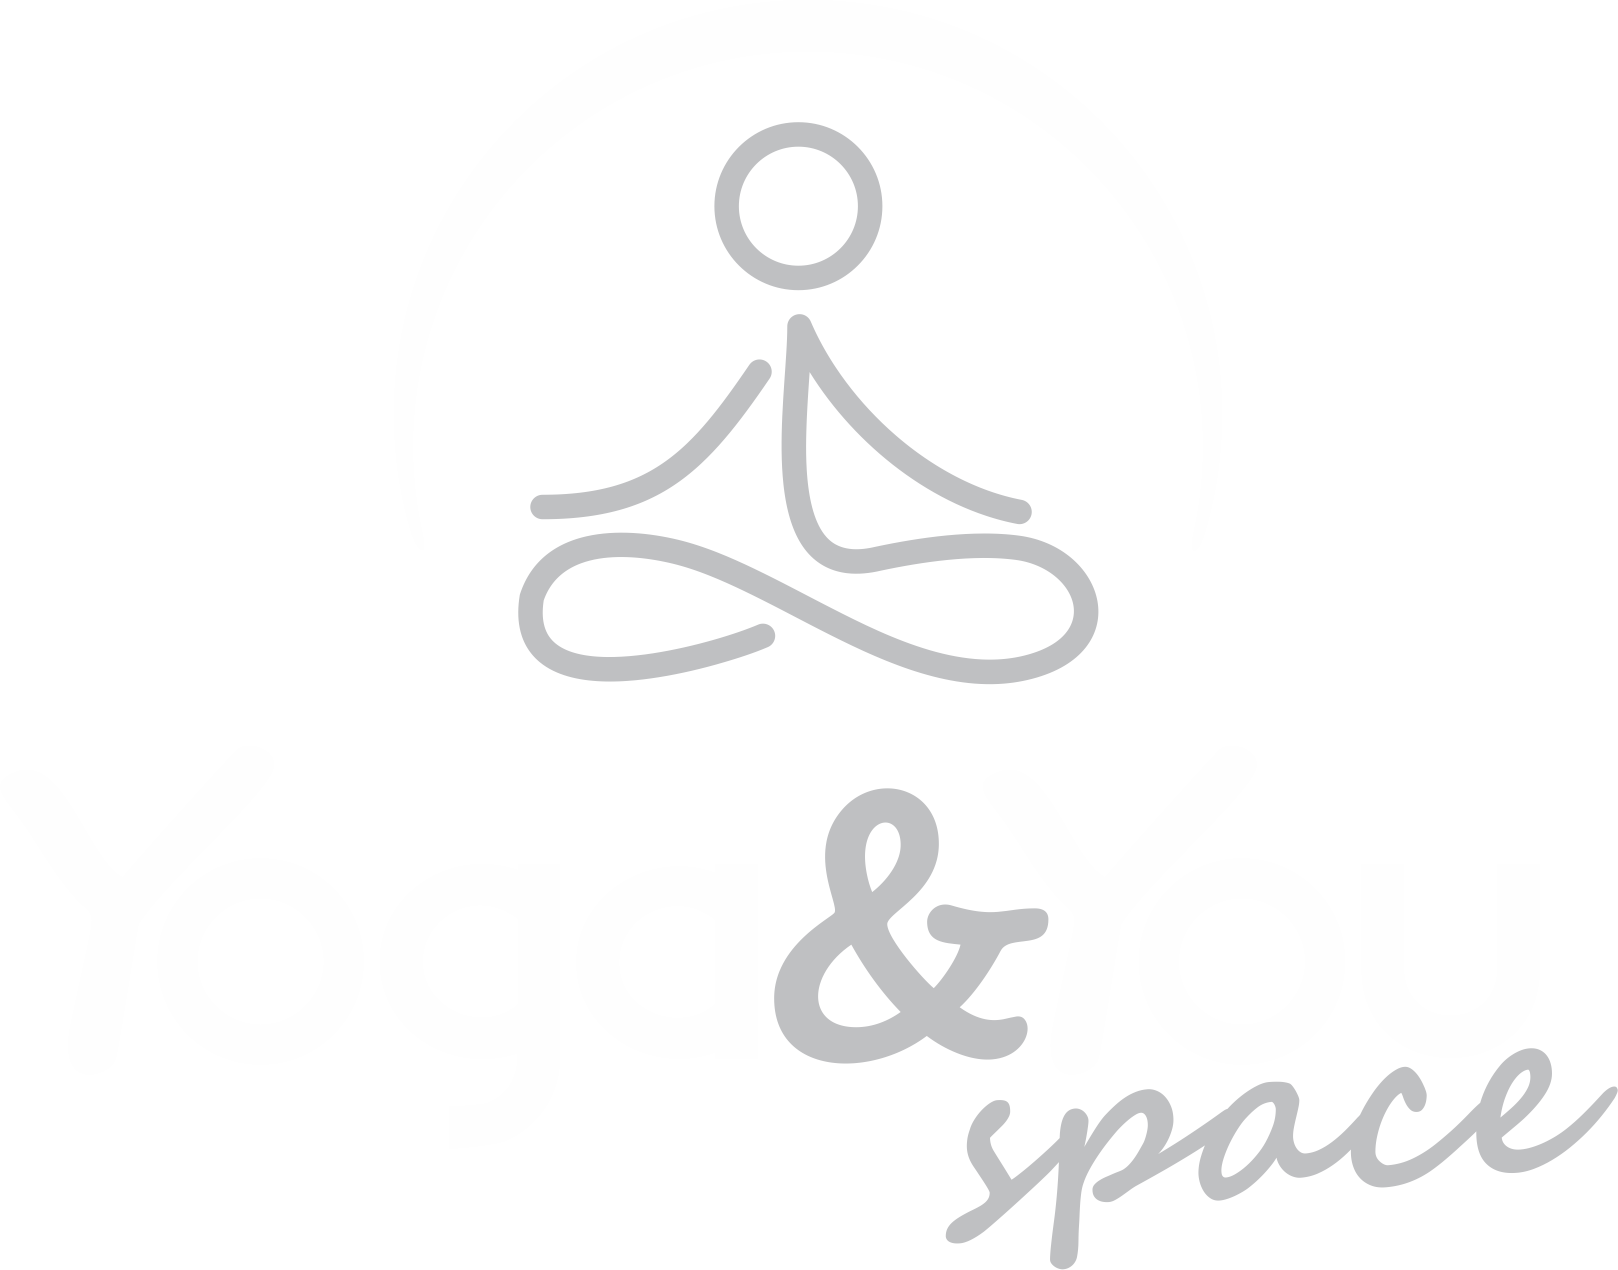 Yoga and You Space